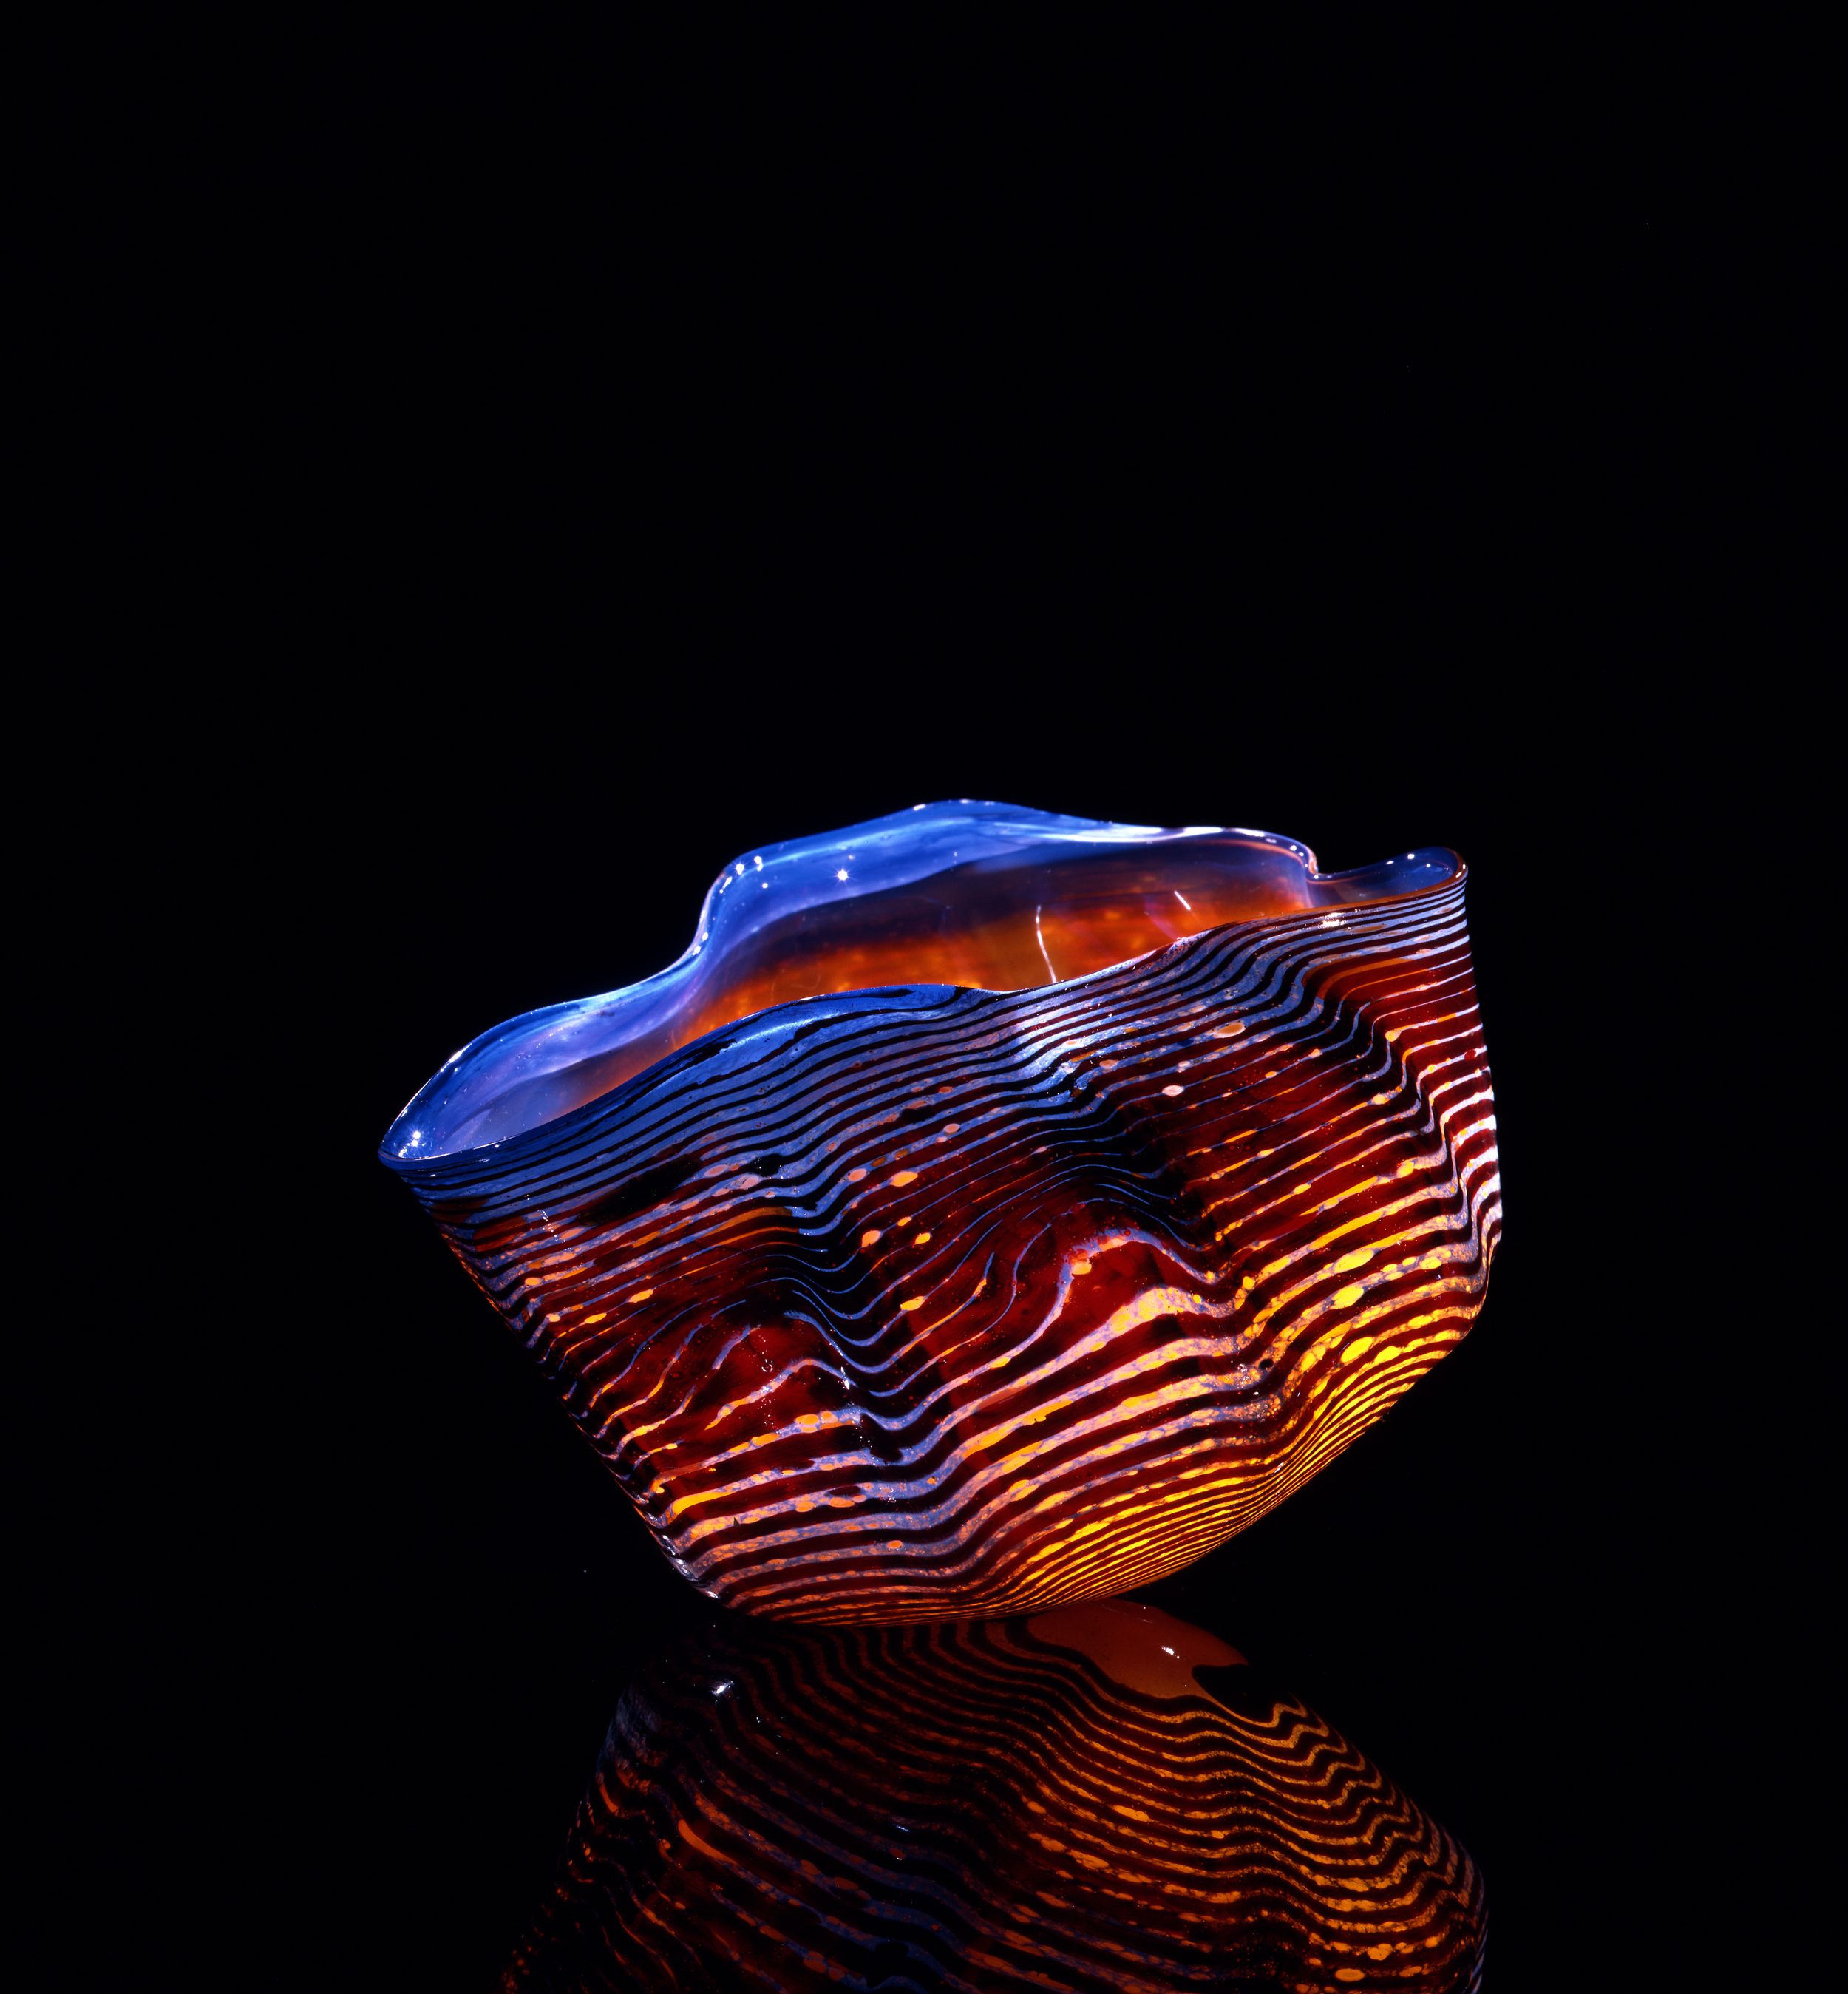 Dale Chihuly, Auburn Macchia with Phosphor Blue Lip Wrap (1981, glass, 6 x 7 x 7 inches), DC.65